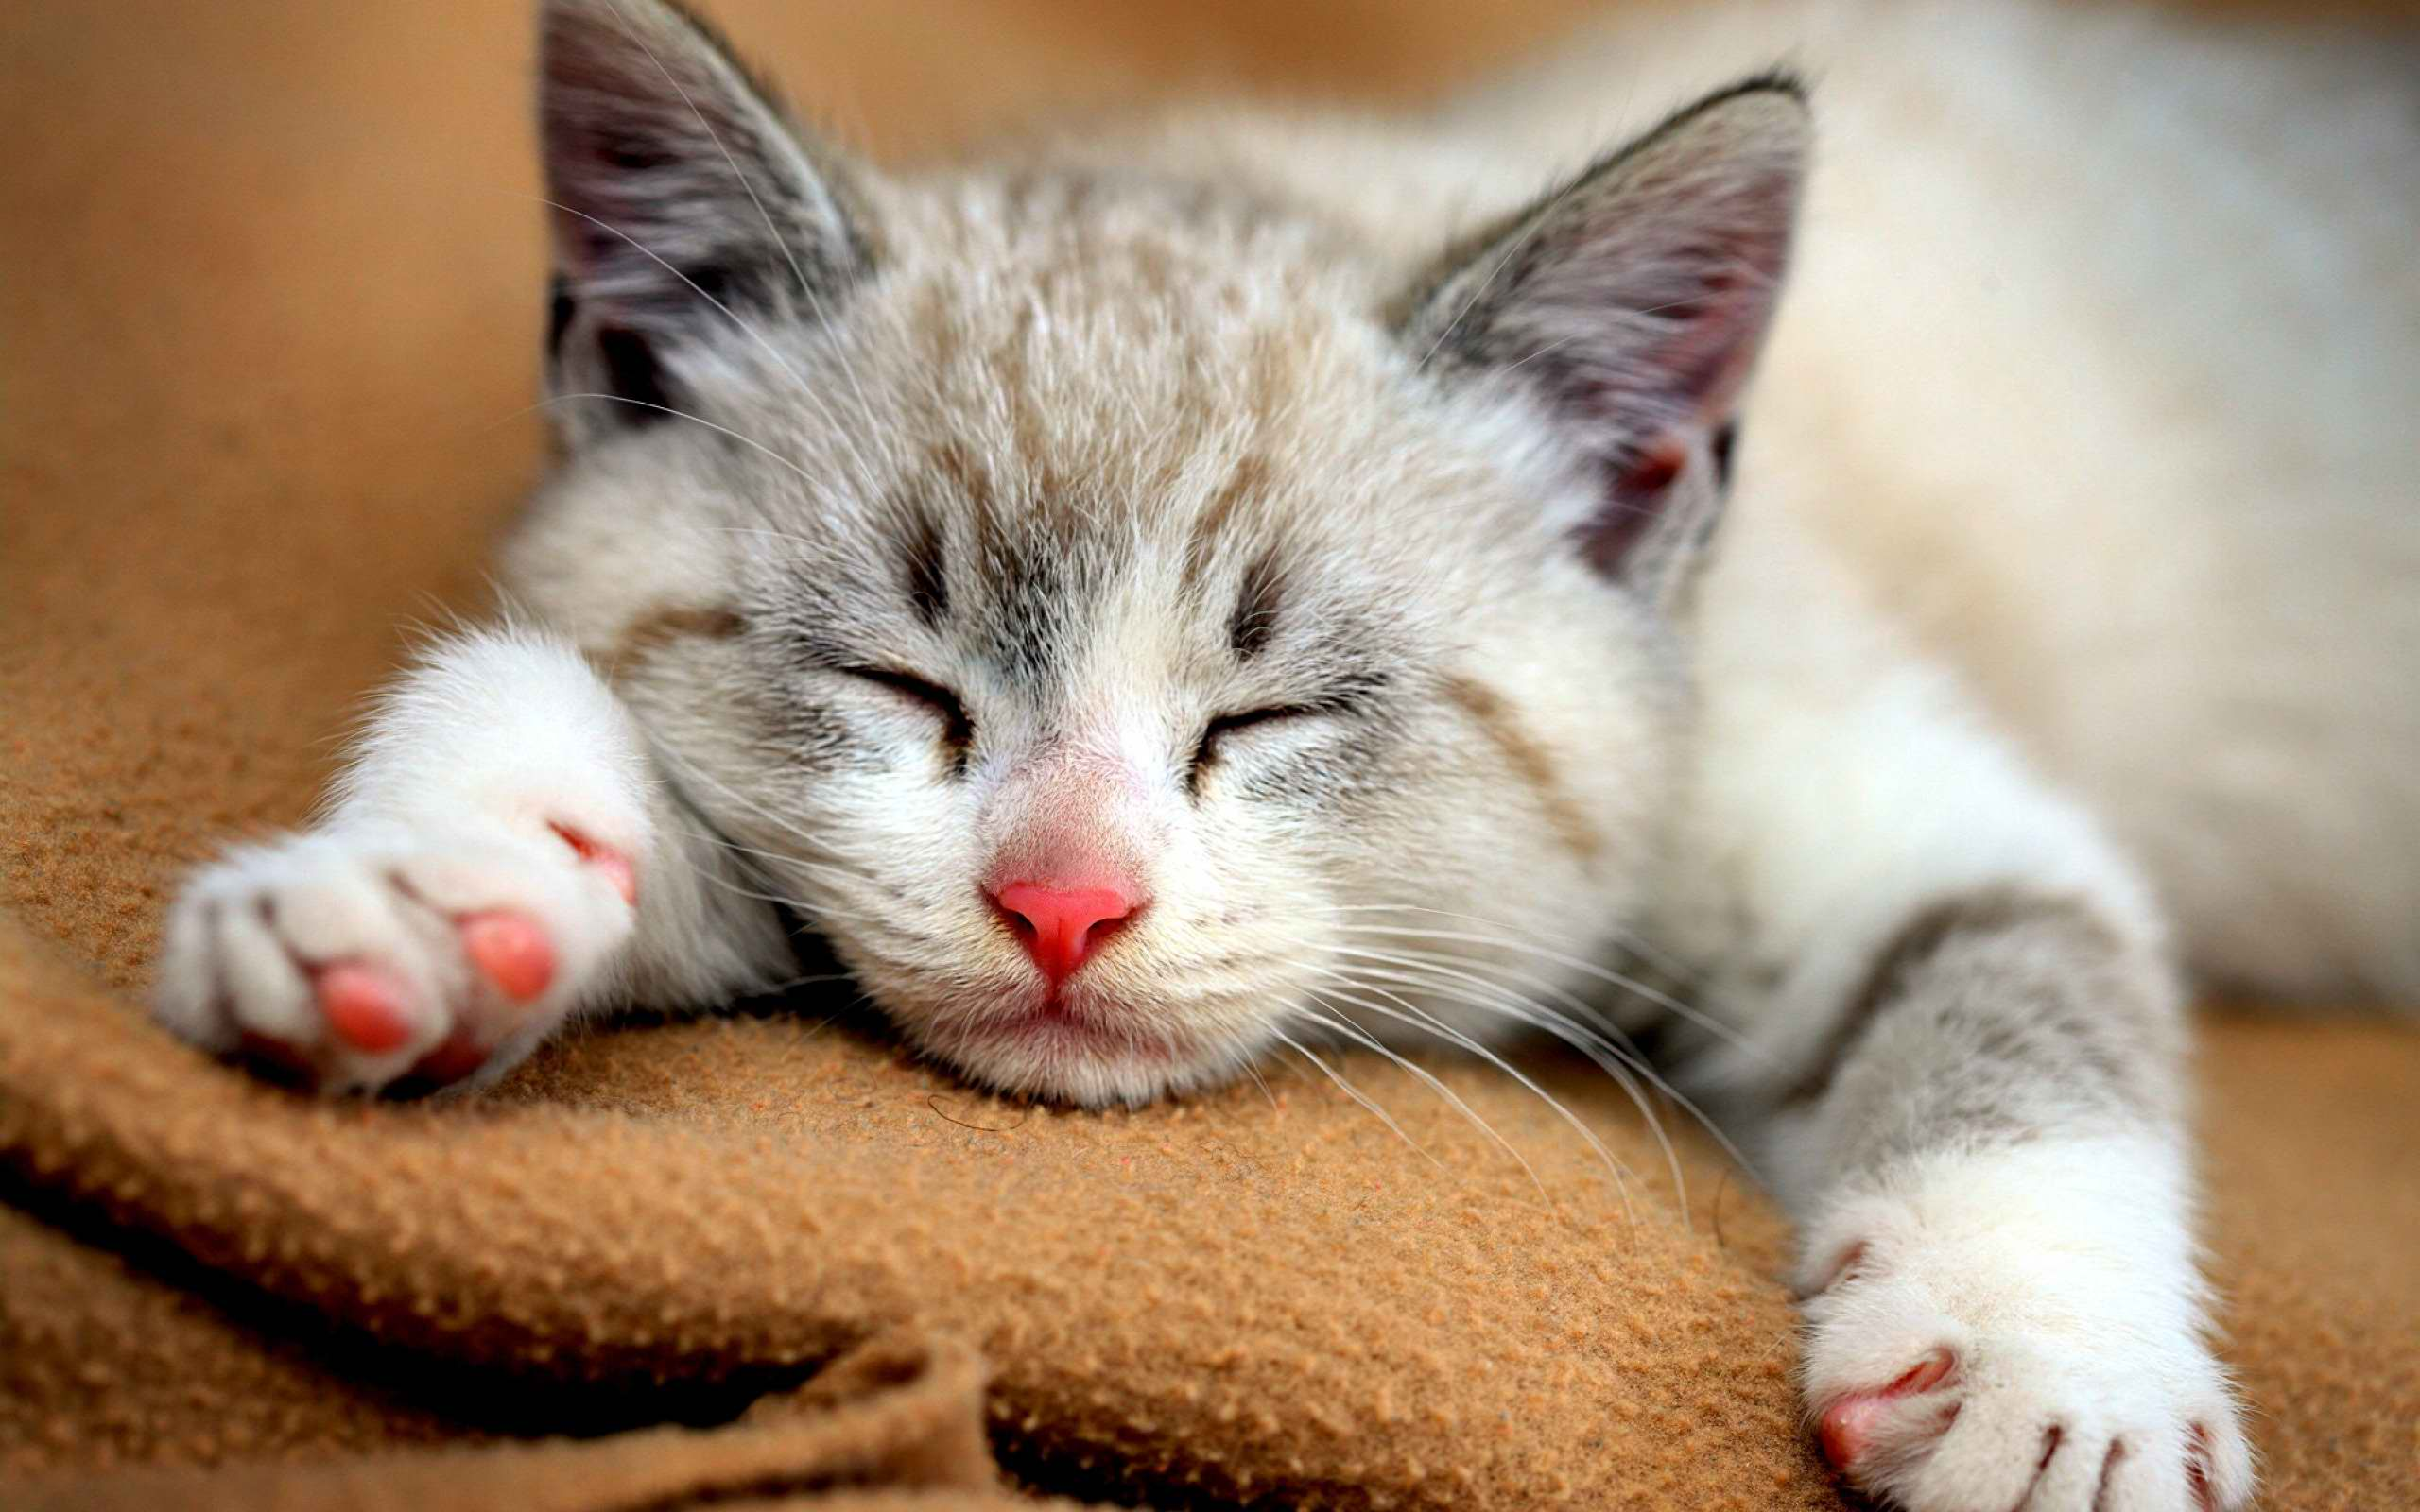 Cute Cat Pictures Tumblr Wallpaper Wallpapers HD High 2560x1600